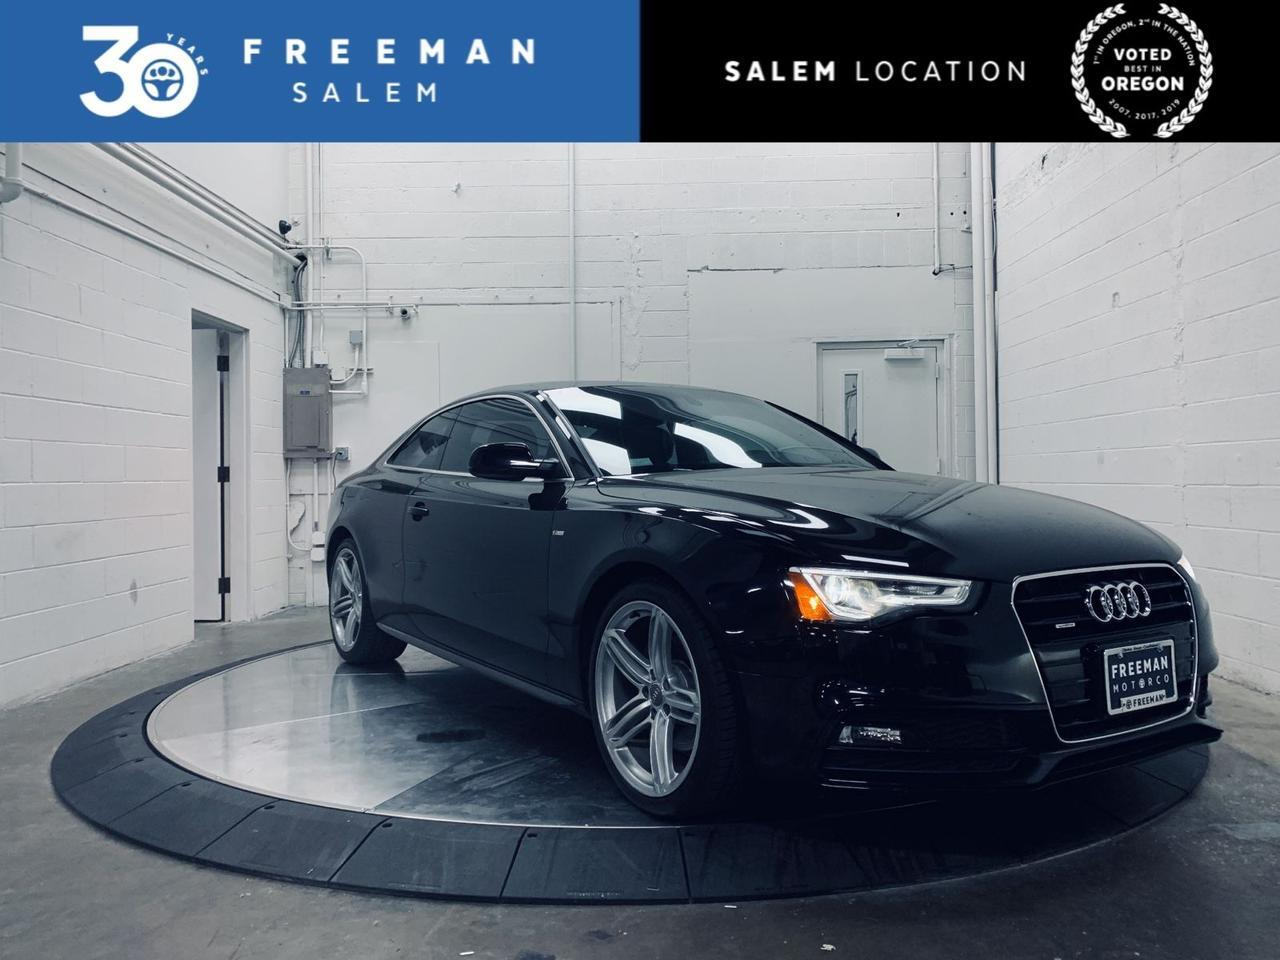 2013 Audi A5 Prestige quattro S Line Package Salem OR